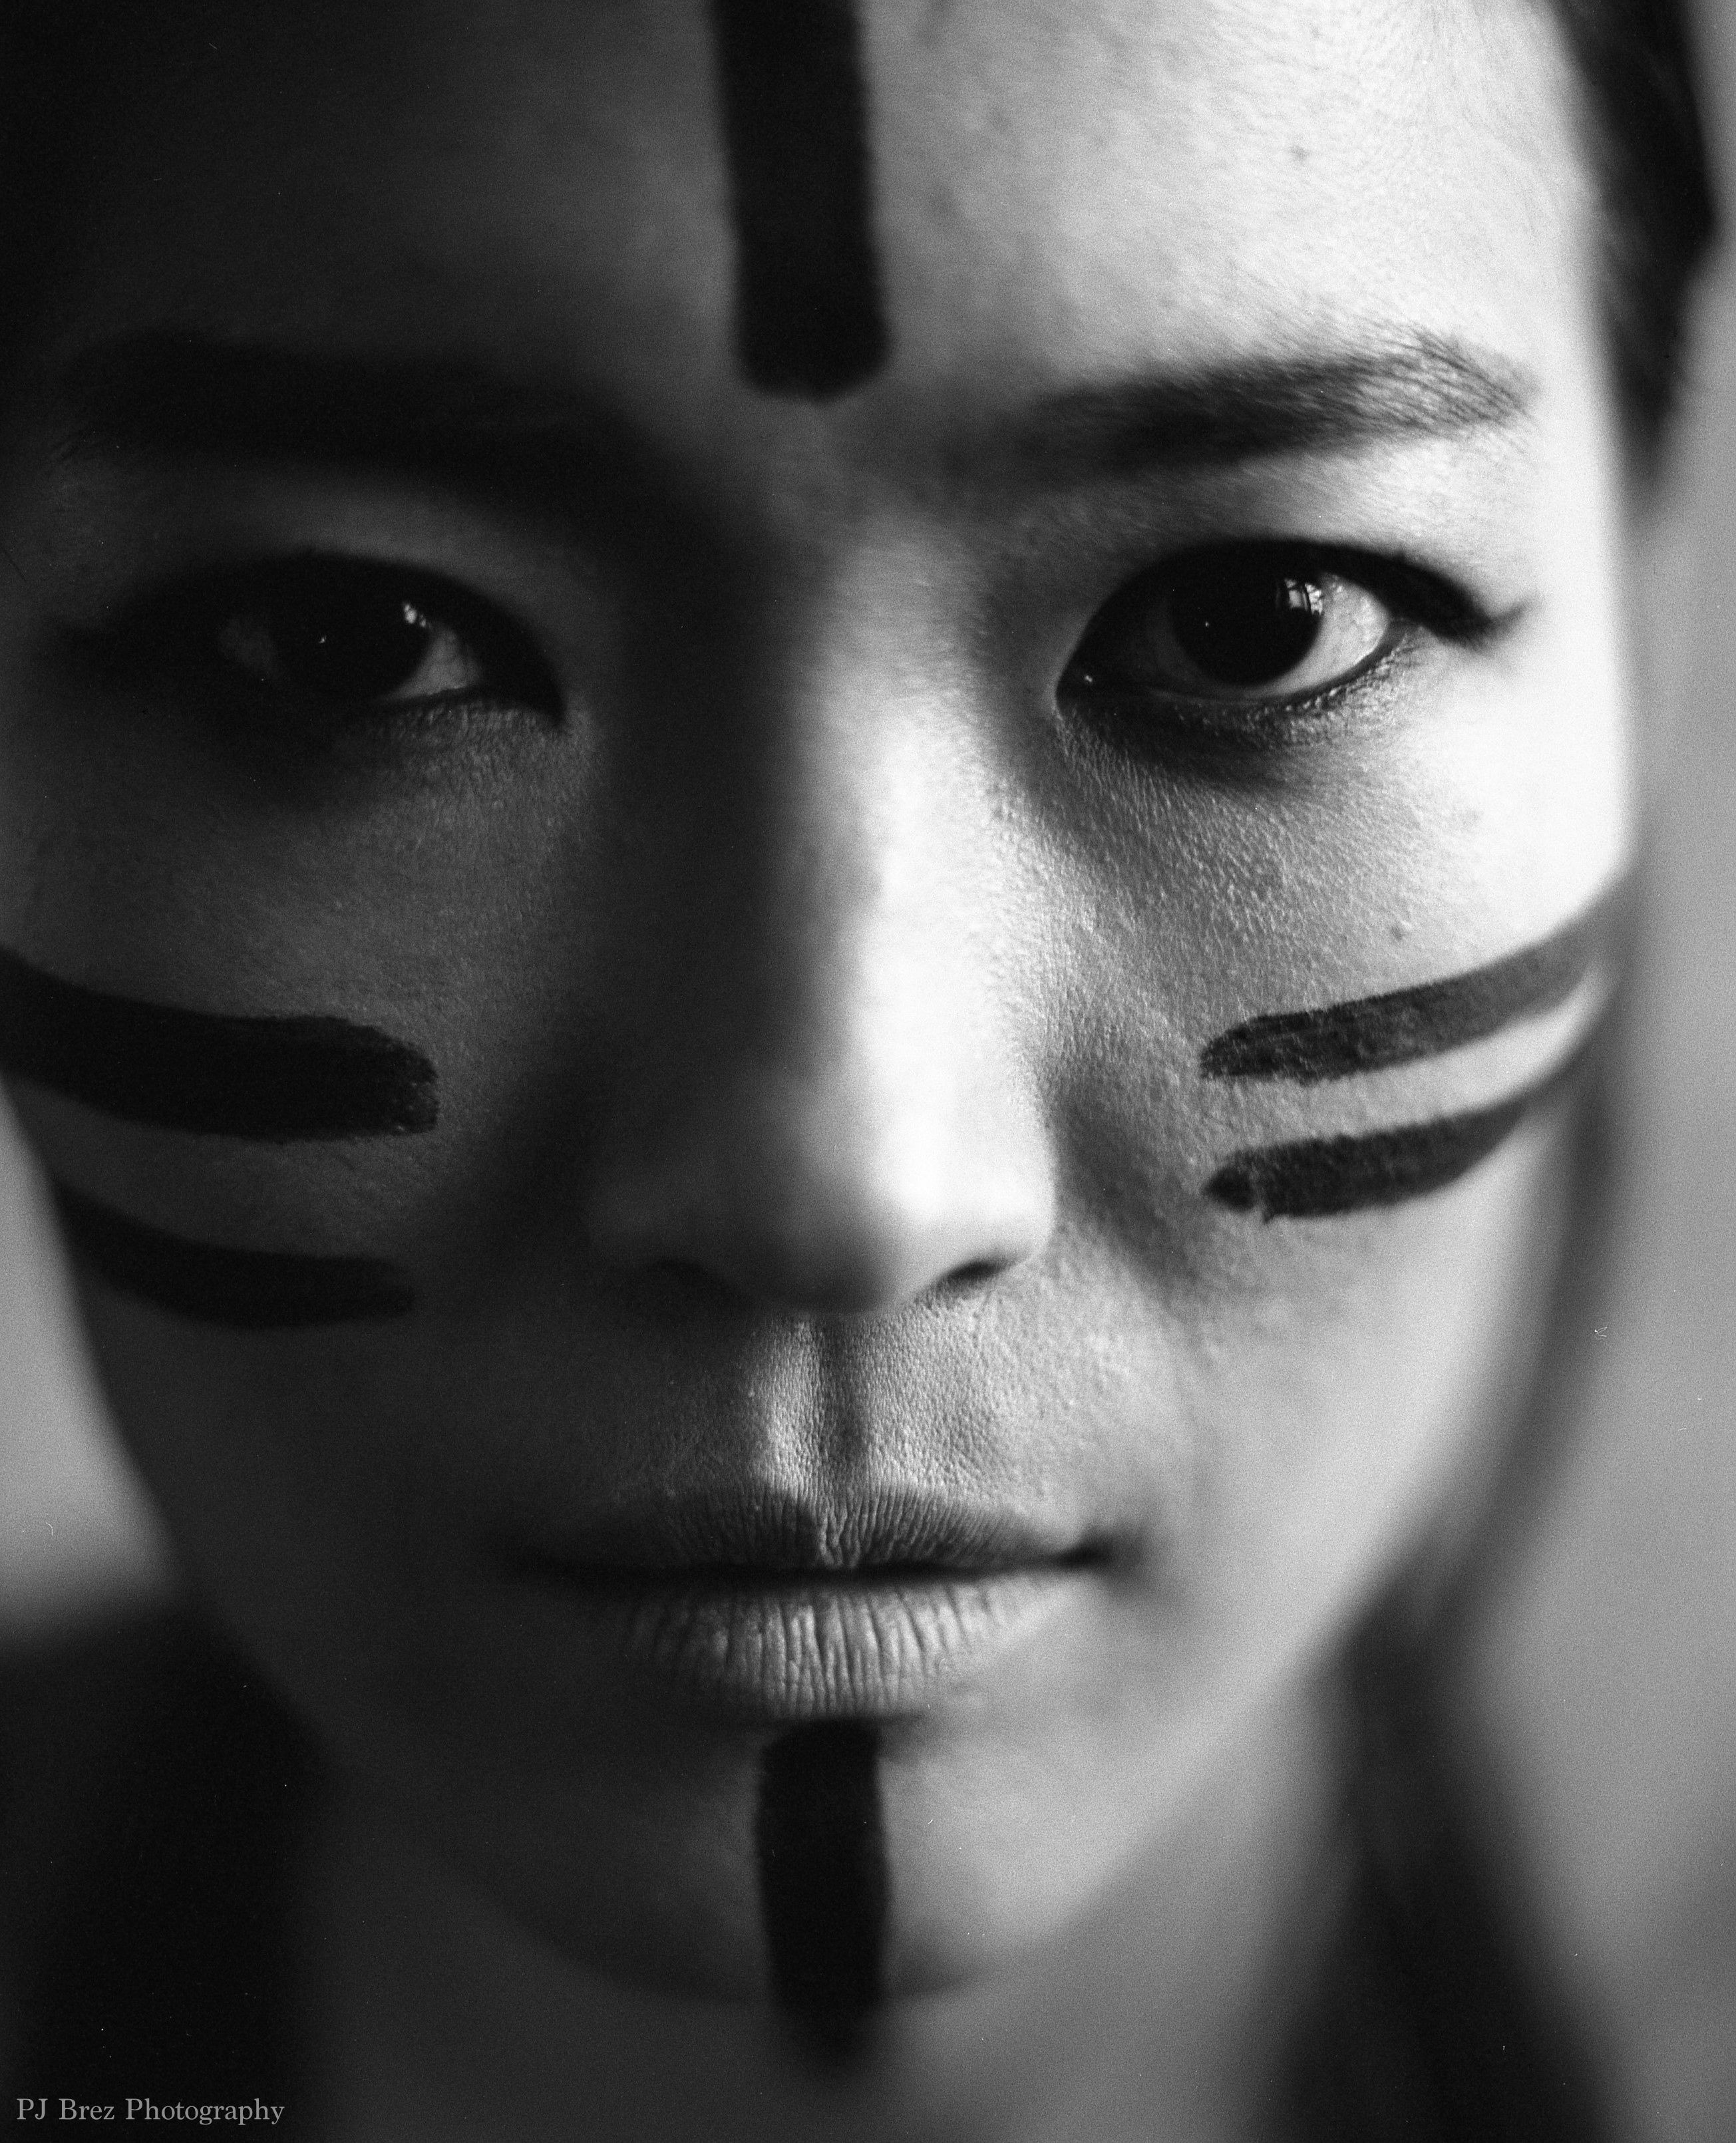 Uncategorized Black Face Paint Ideas httpspjbrezphotography files wordpress com201501warpaint22 jpg makeup ideas pinterest war paint face and ideas